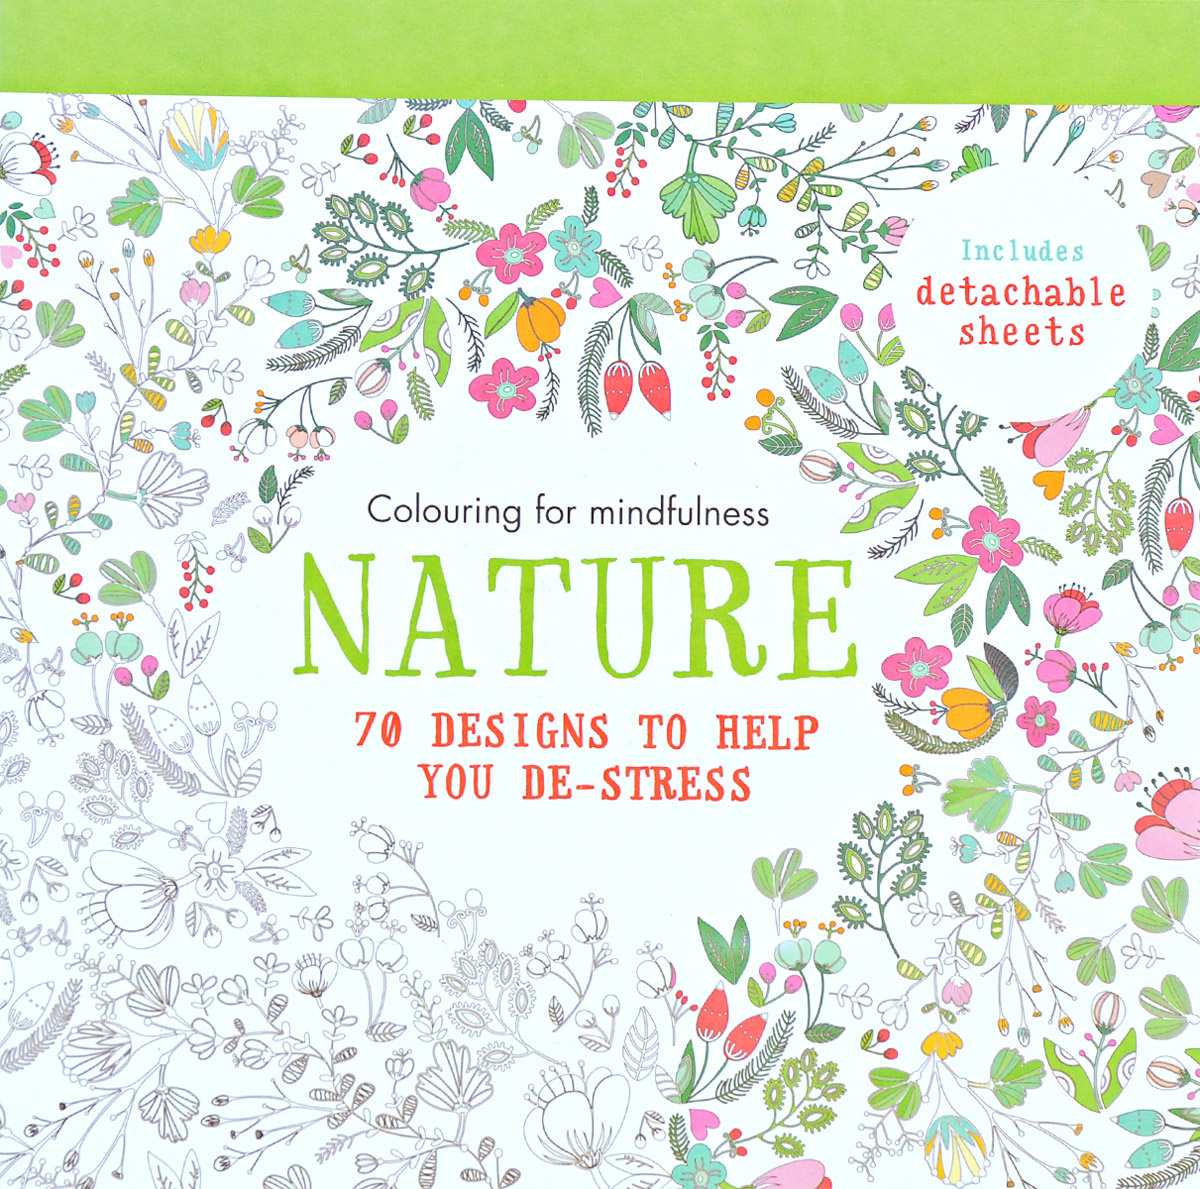 Nature: 70 Designs to Help You De-Stress: Colouring for Mindfulness #1